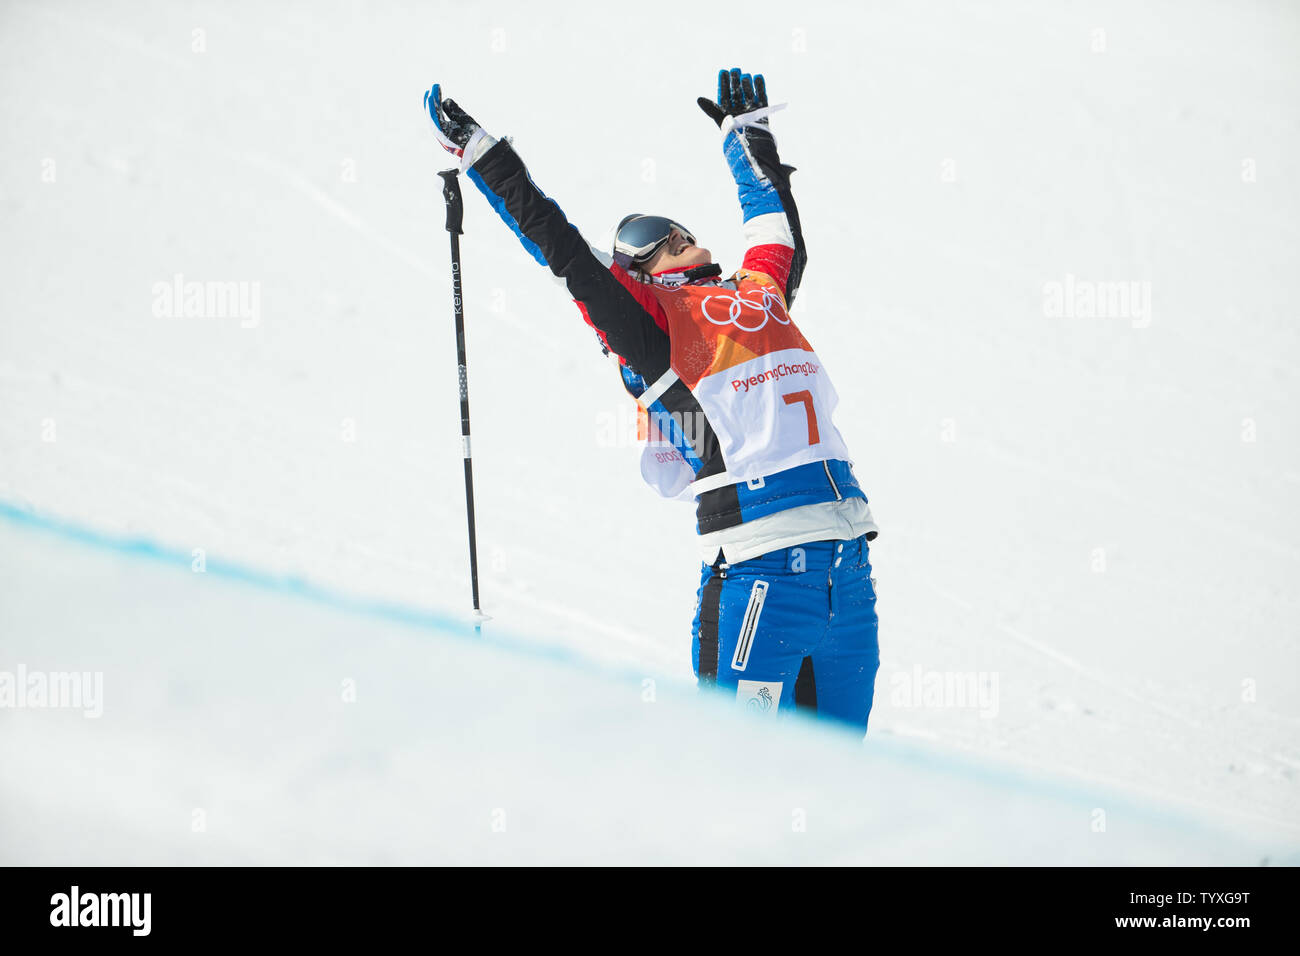 Marie Martinod of France celebrates after a fall on her last run in the Freestyle Skiing Ladies' Halfpipe final at Phoenix Snow Park in Pyeongchang, South Korea on February 20, 2018. Martinod took silver in the event with a best score of 92.60. Photo by Matthew Healey/UPI - Stock Image